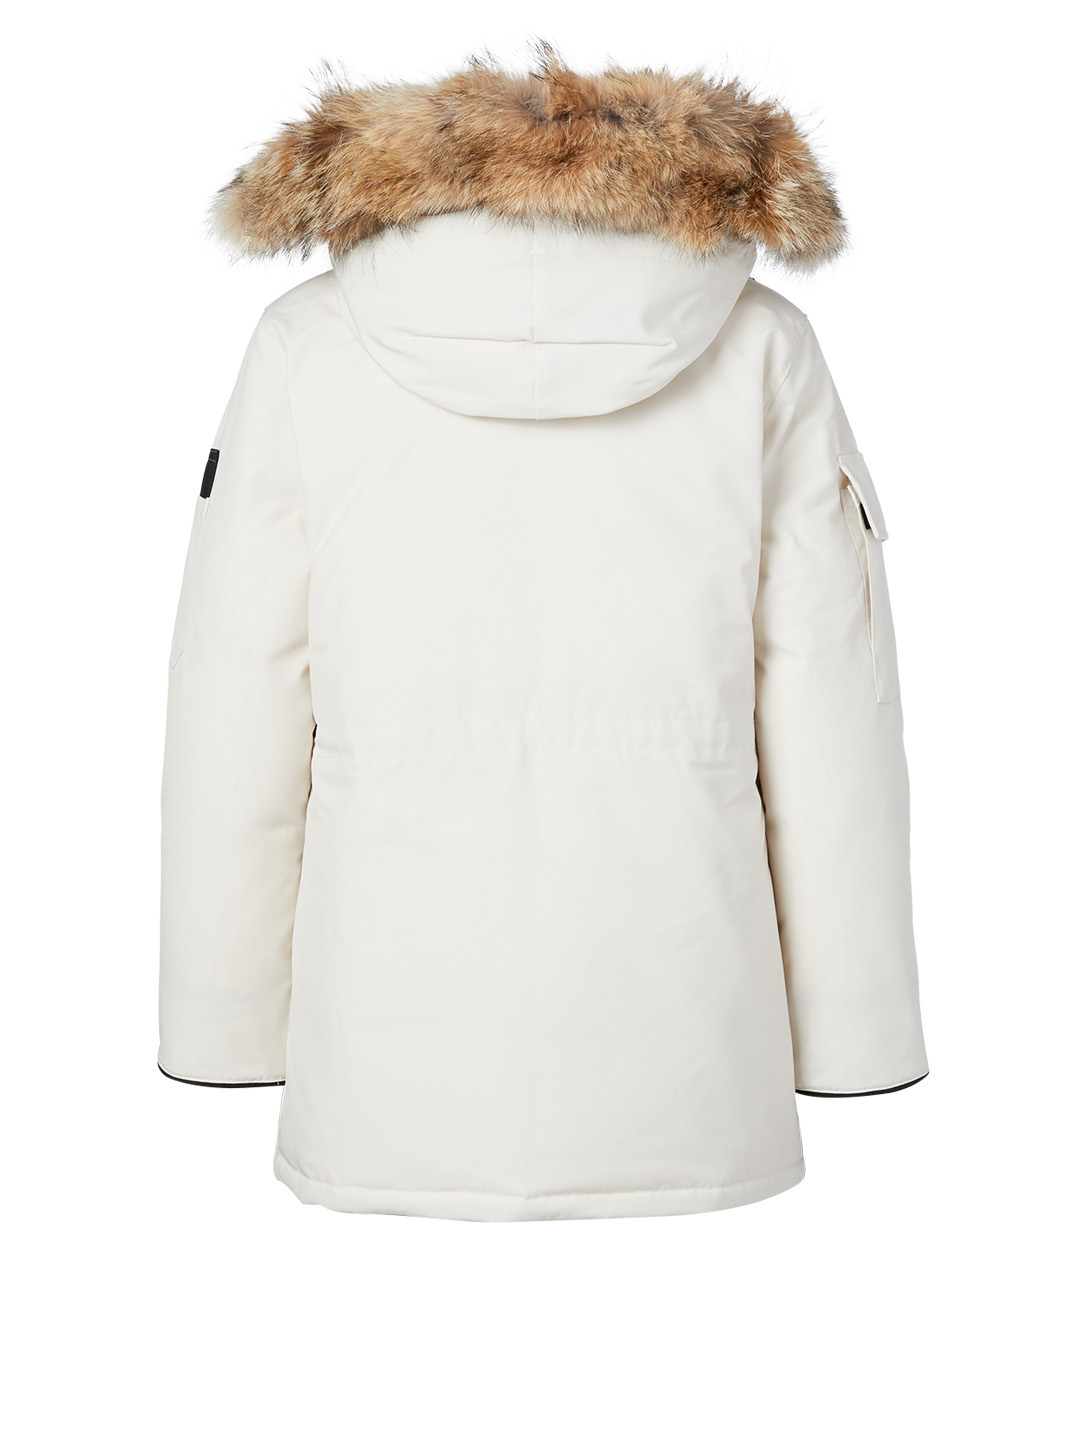 CANADA GOOSE Expedition Parka With Fur Hood - Fusion Fit Women's White